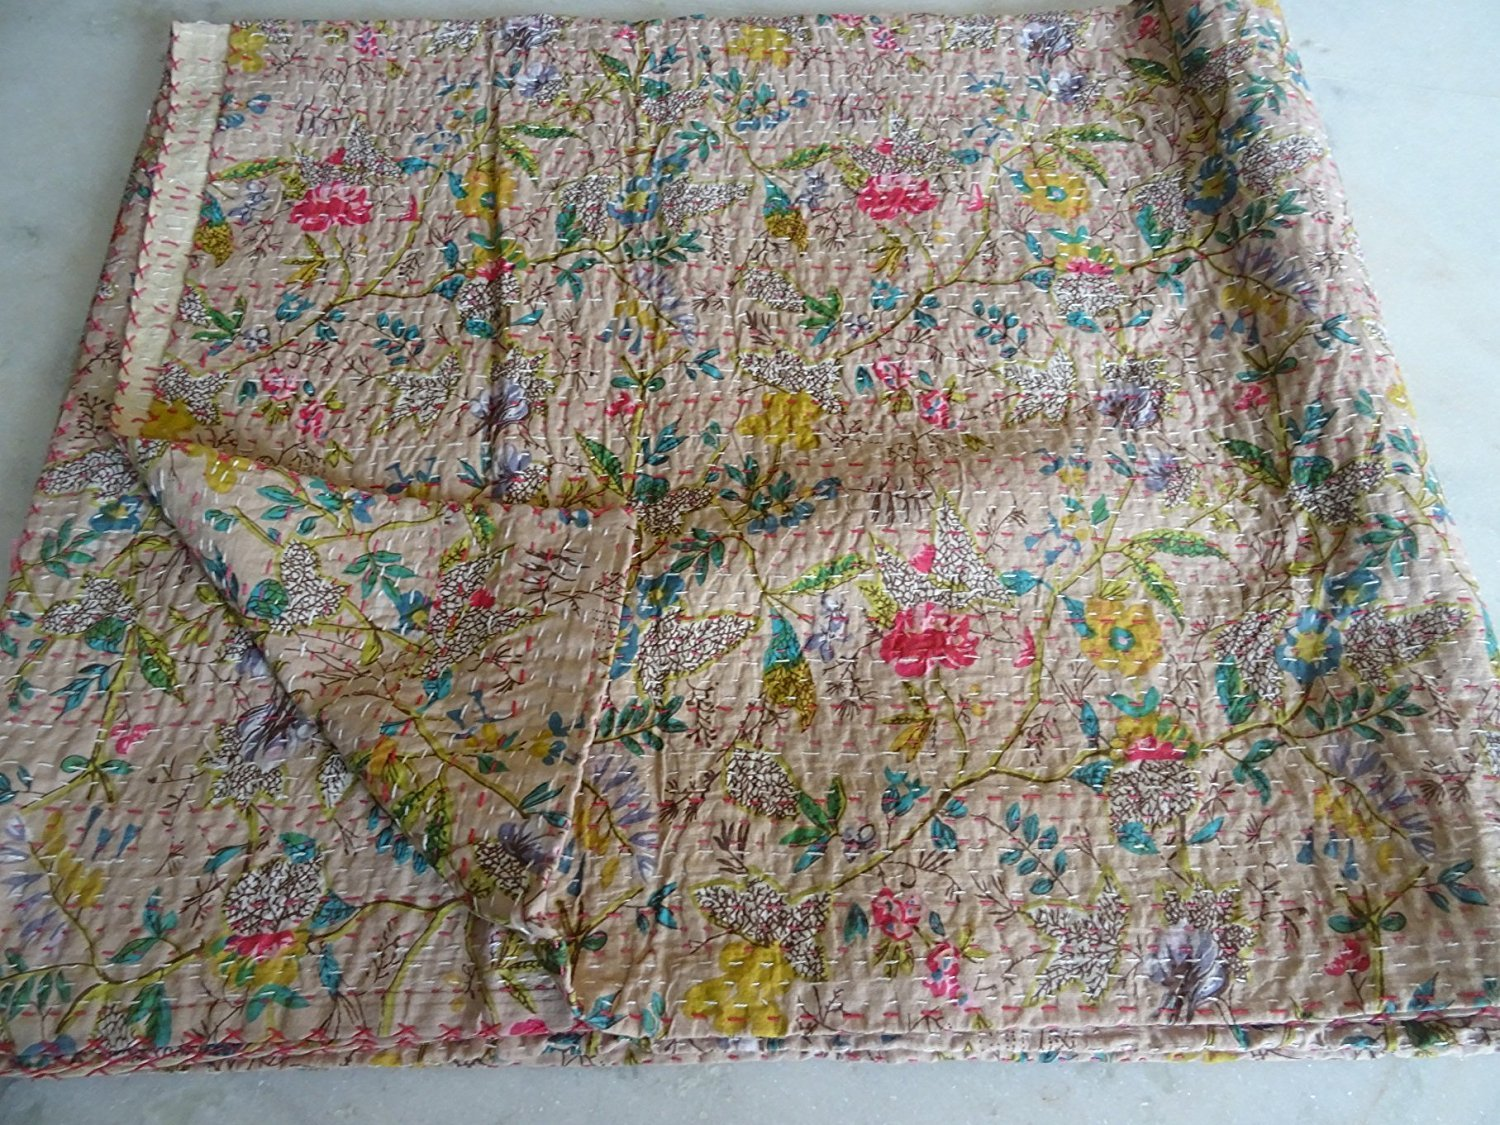 Indian Multicolor Paisley PARADISE Print King Size Kantha Quilt , Kantha Blanket, Bed Cover, King Kantha bedspread, Bohemian Bedding Kantha (Begie) by Sophia Art (Image #1)